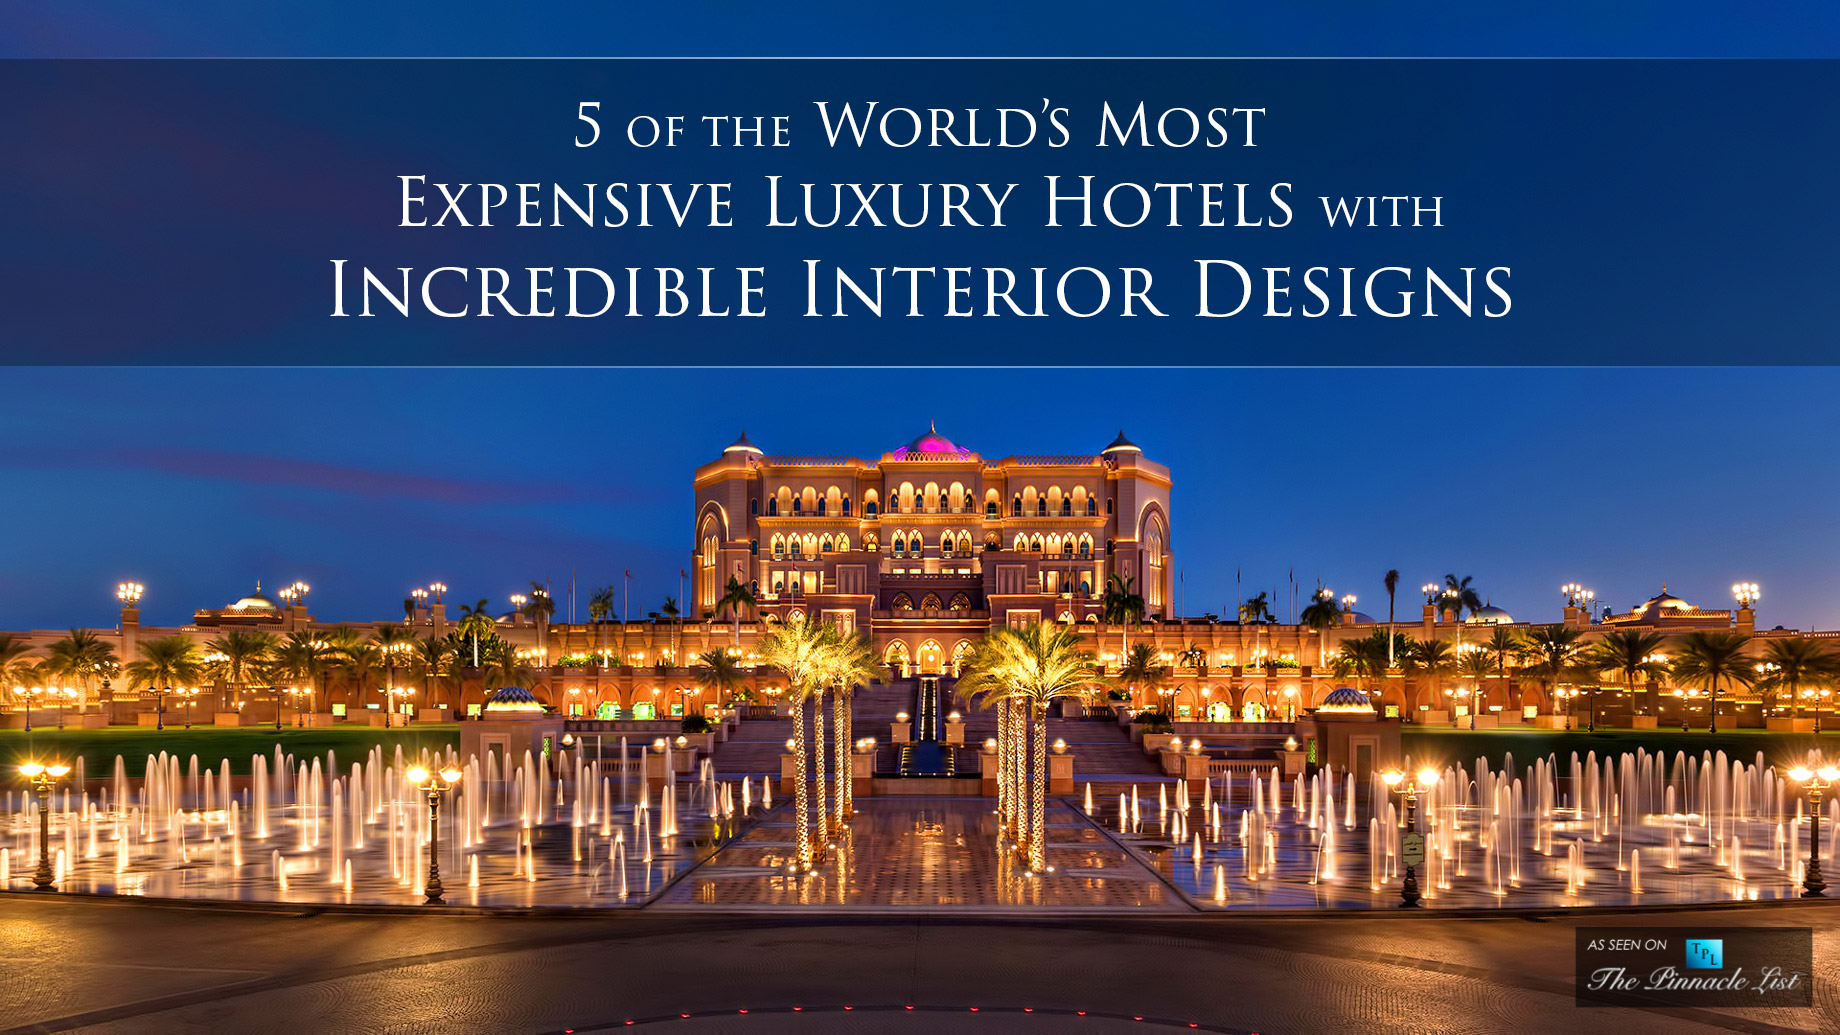 5 of the World's Most Expensive Luxury Hotels with Incredible Interior Designs